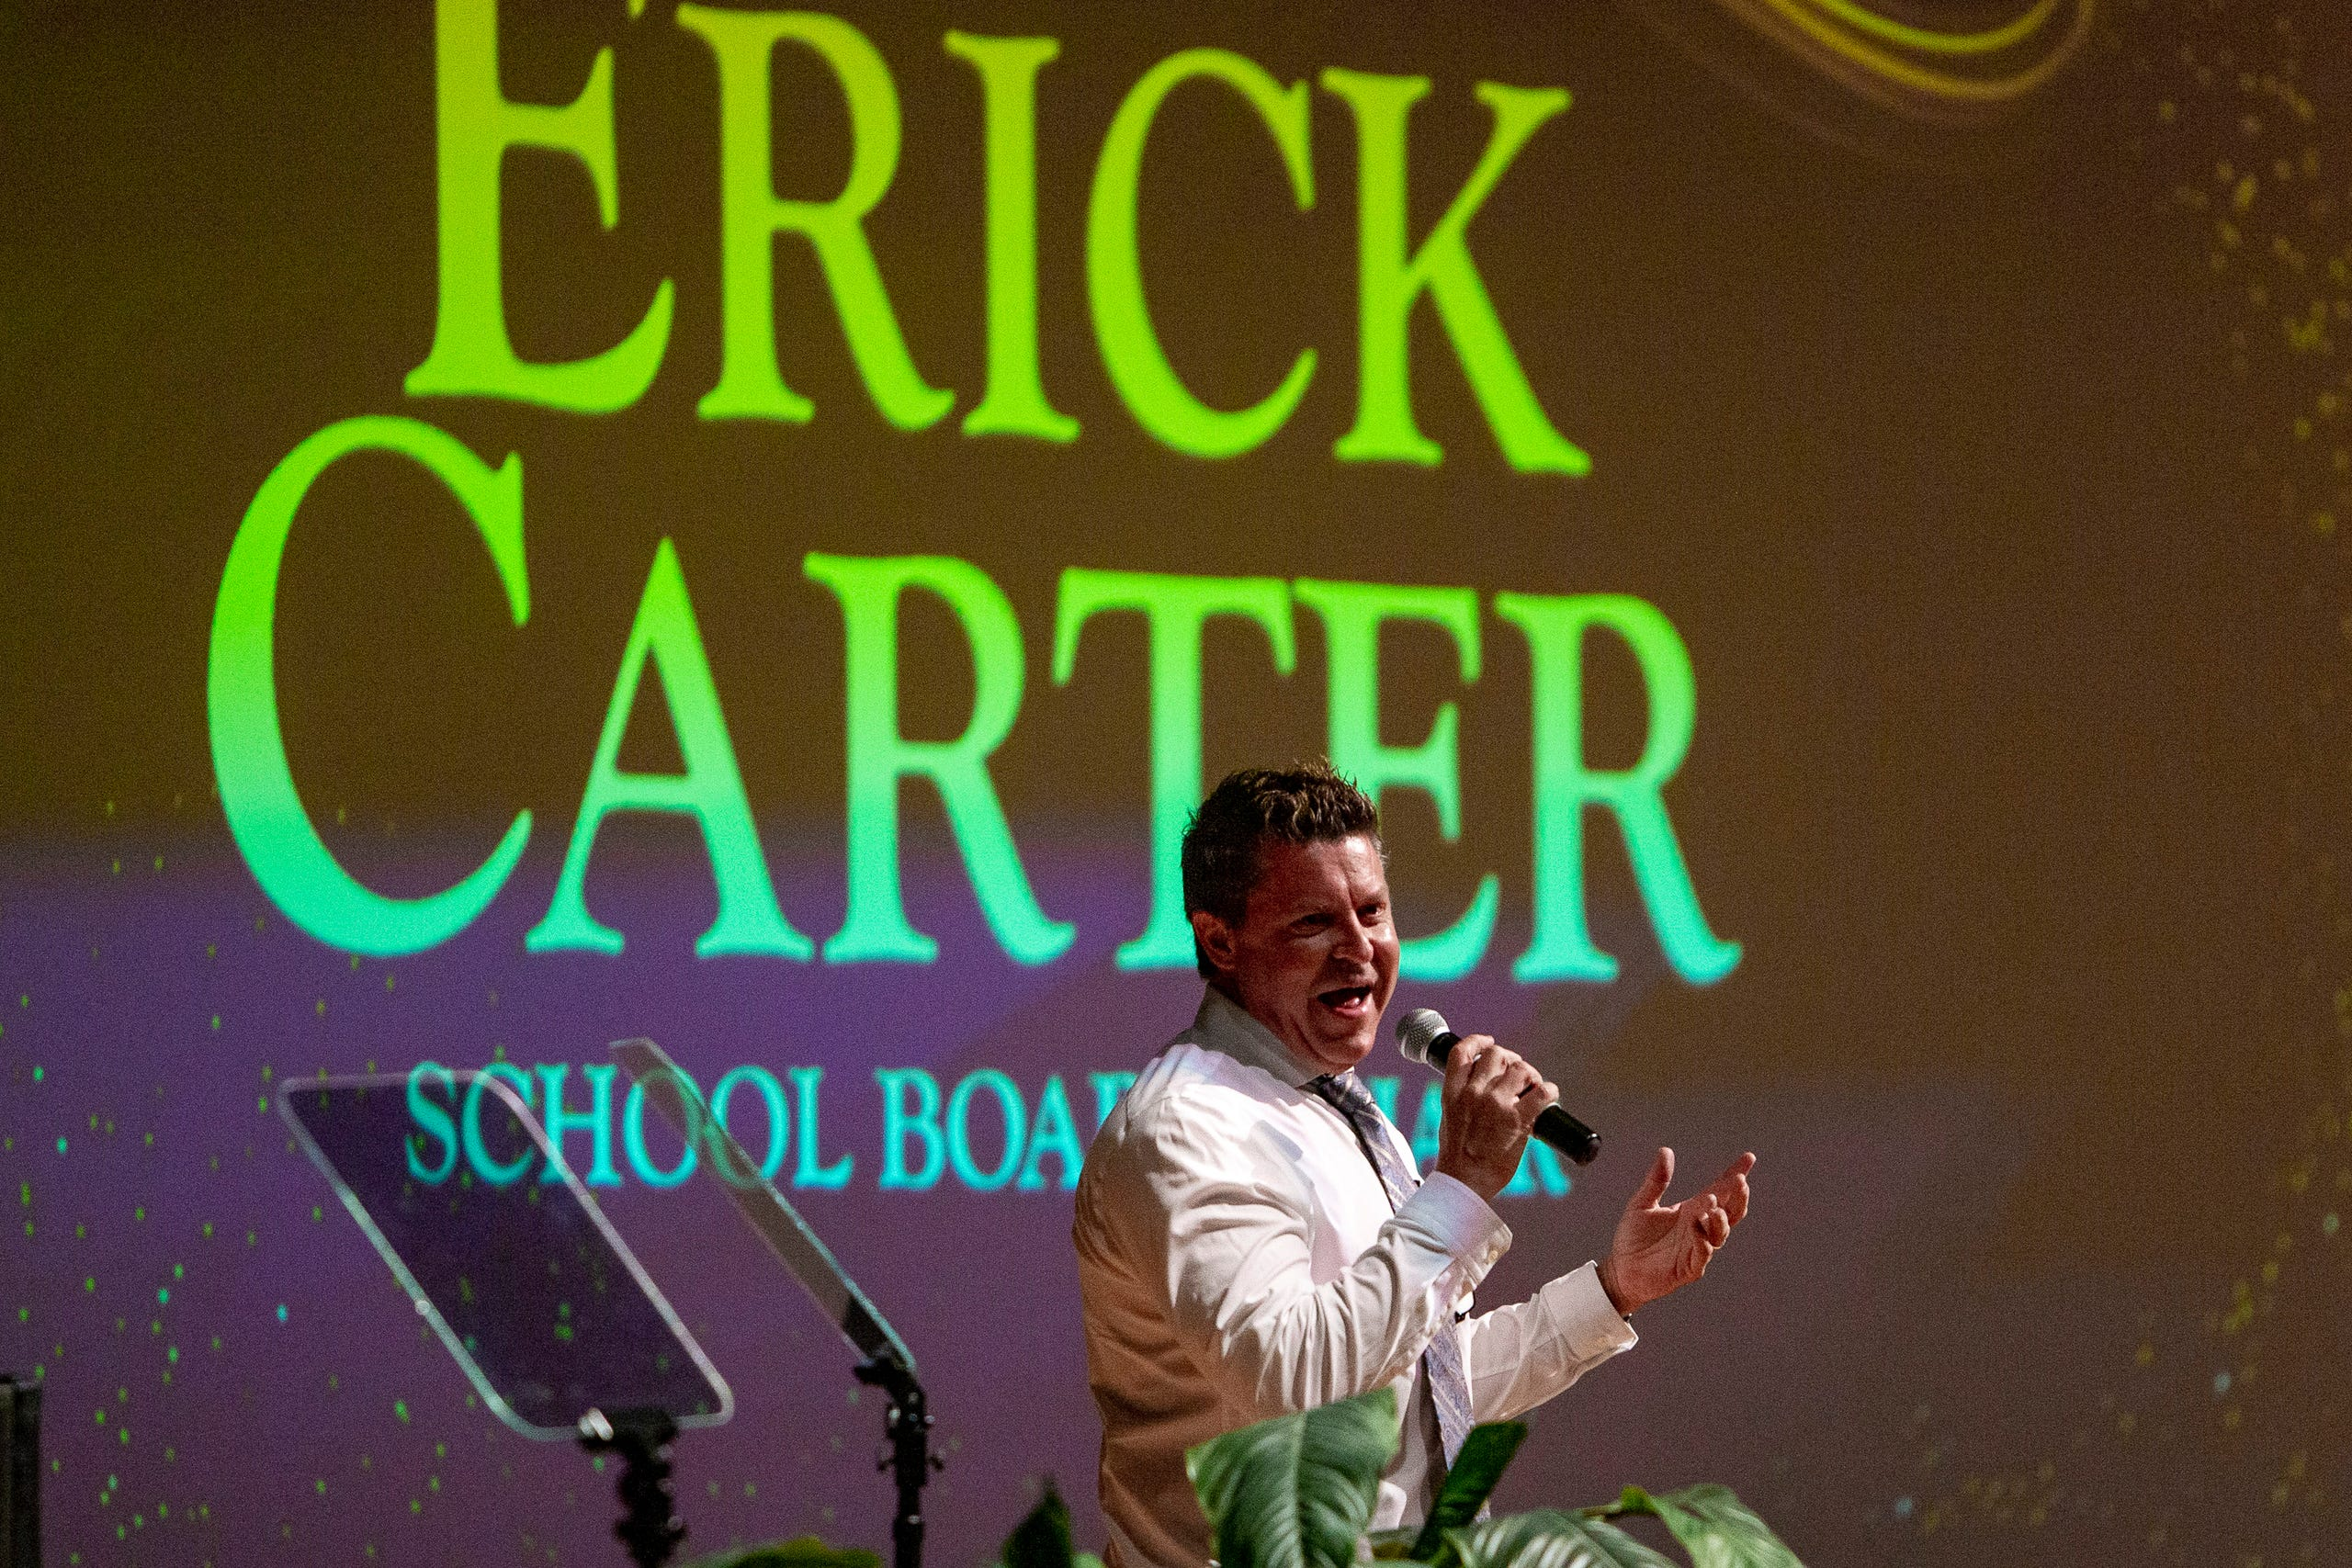 Erick Carter, Collier County School Board member, speaks during the 2021-22 Opening of Schools ceremony, Wednesday, Aug. 4, 2021, at Golden Gate High School.